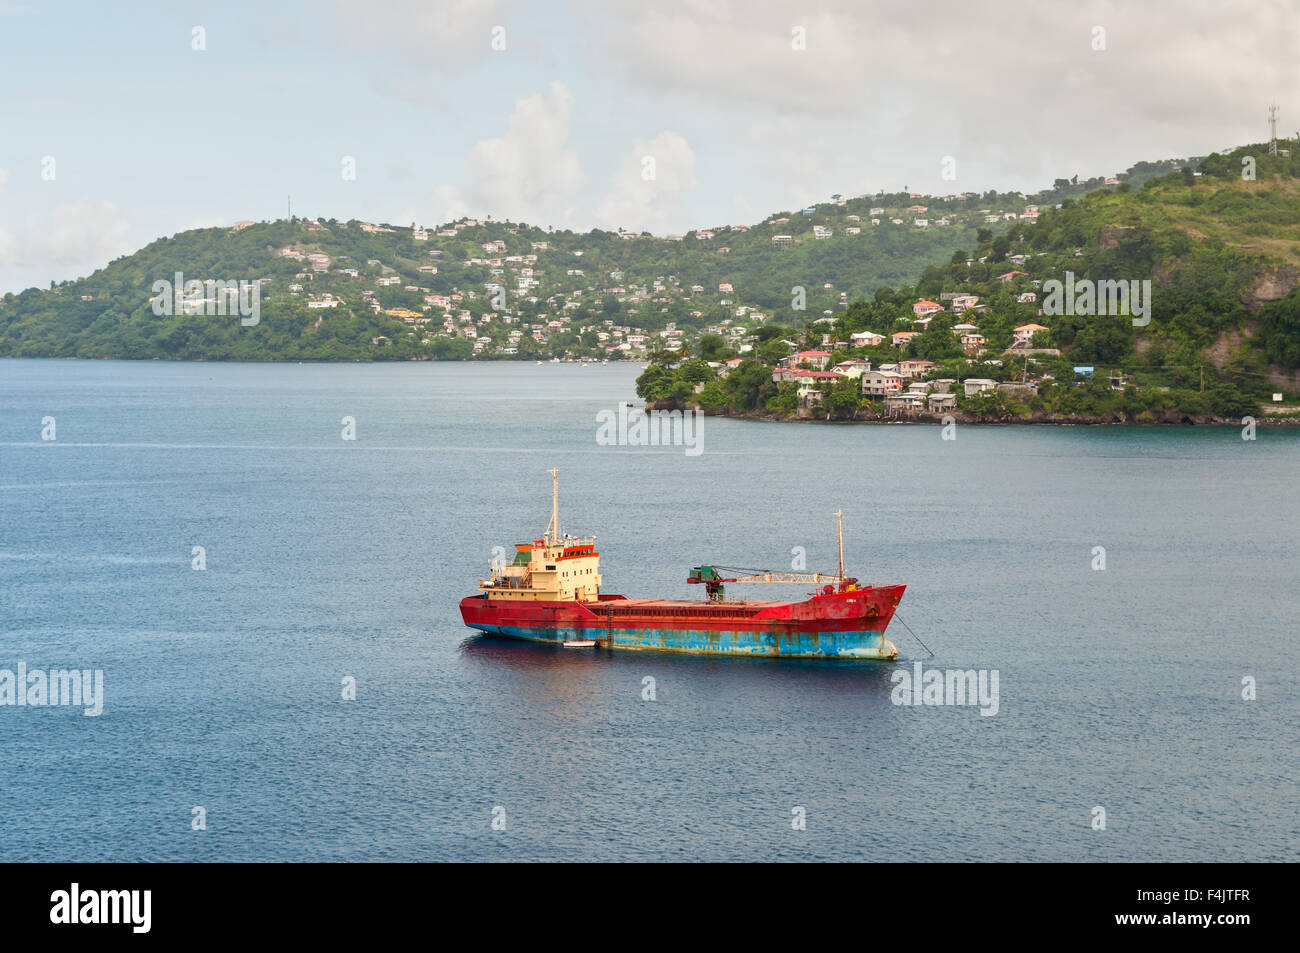 General cargo ship 'Anina' built 1970 in the Bay of St. George's, Grenada - Stock Image